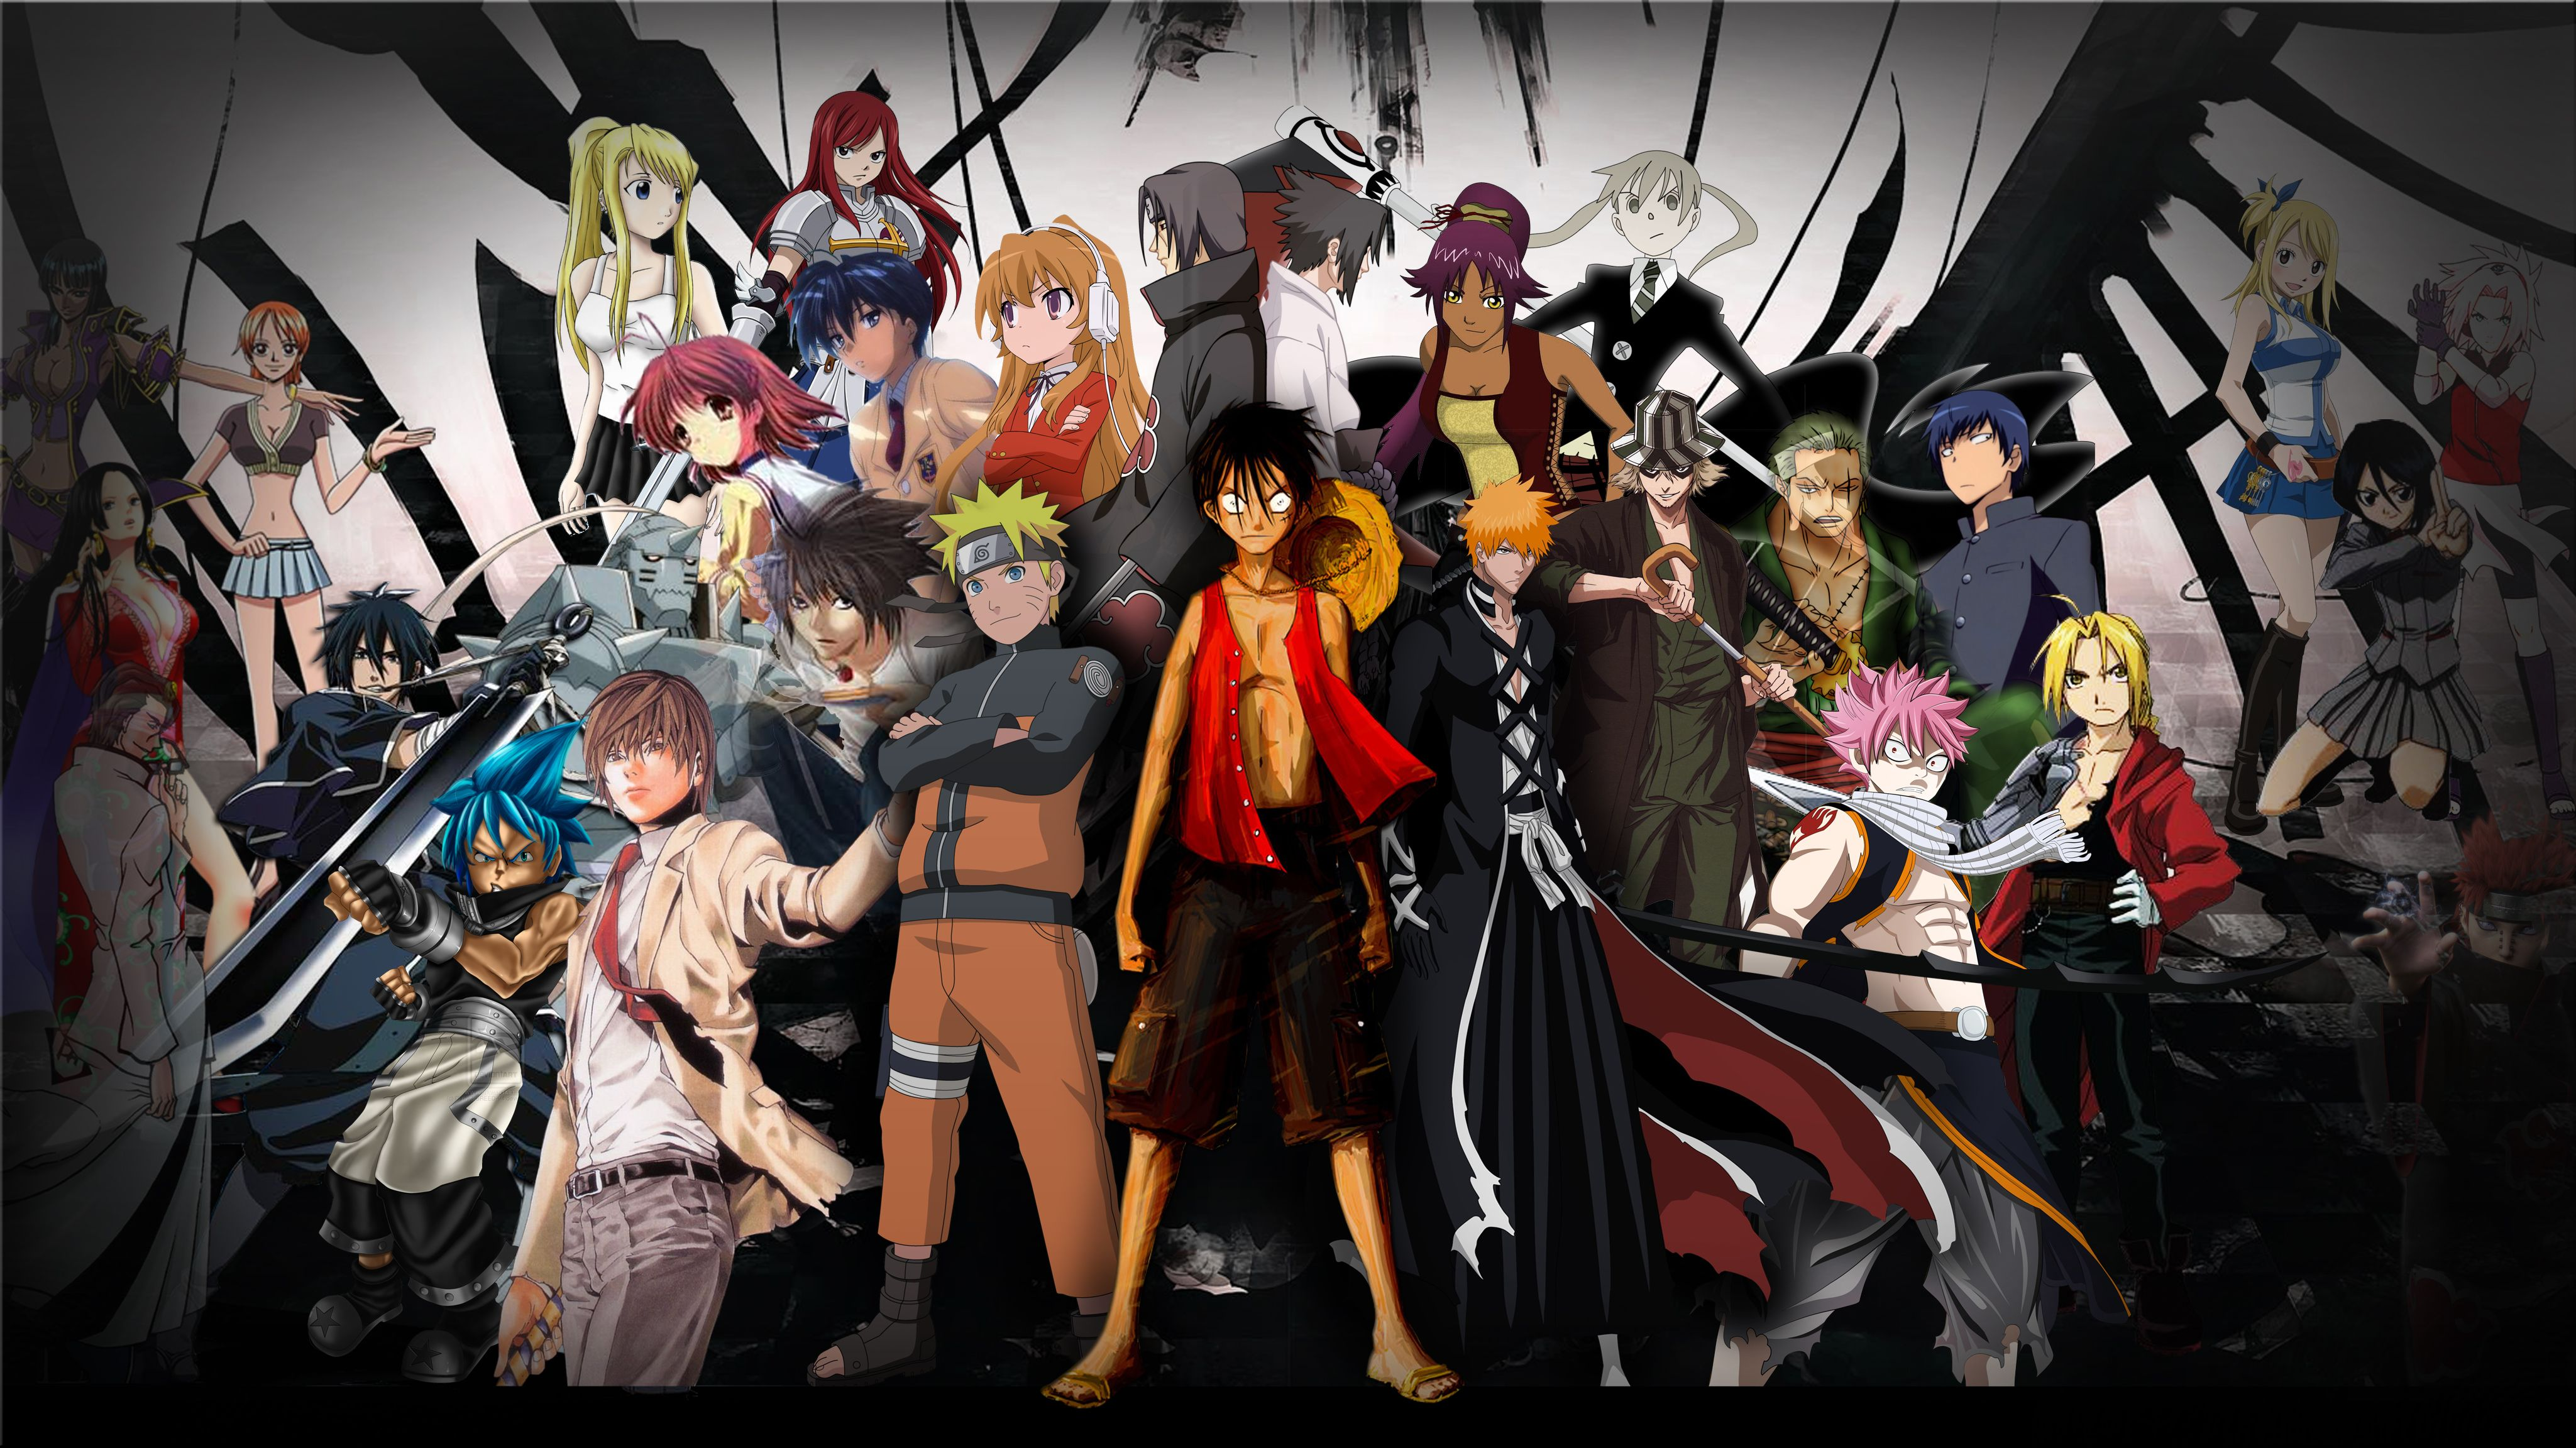 Anime Universe Photo Anime Characters Cool Anime Wallpapers Anime Wallpaper Download All Anime Characters